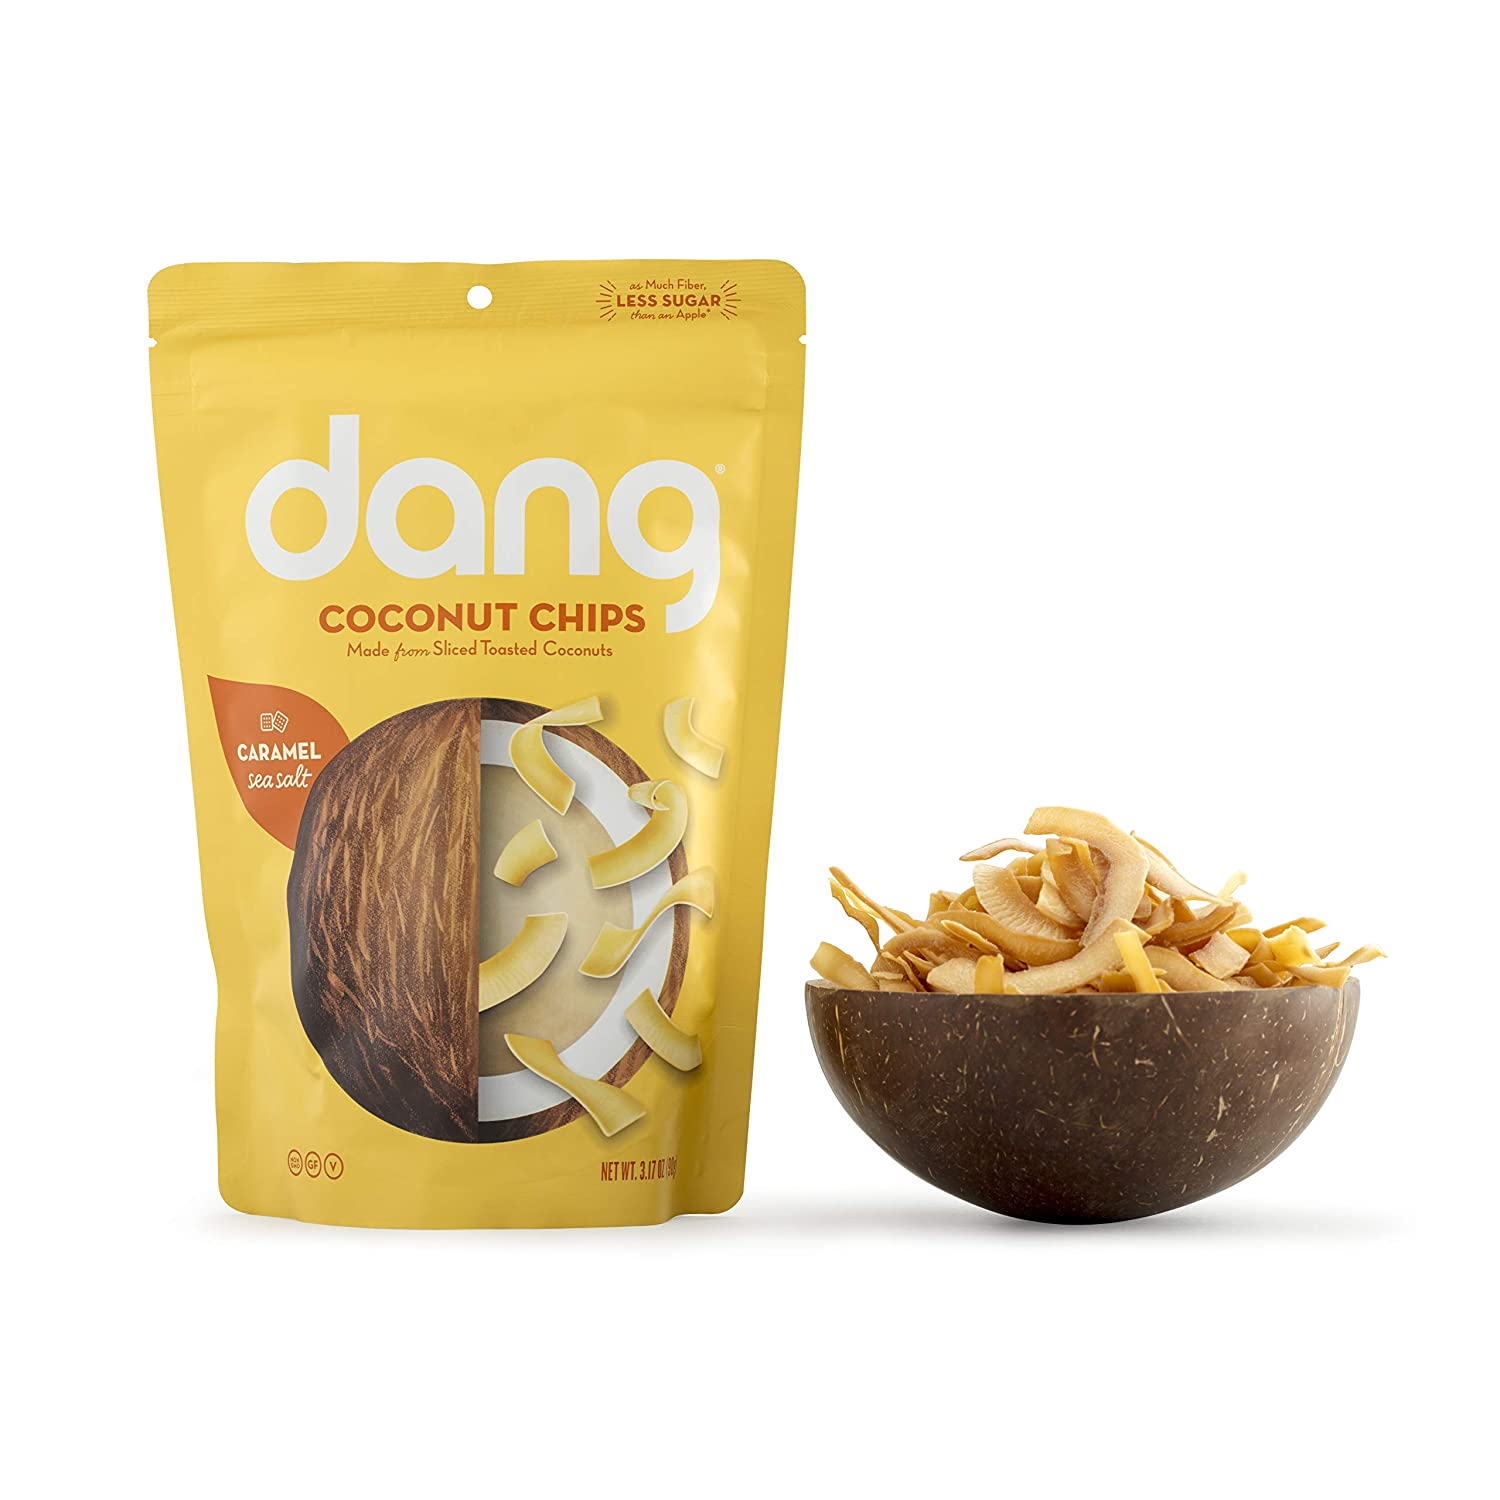 Dang Toasted Coconut Chips | Caramel Sea Salt | 1 Pack | Vegan, Gluten Free, Paleo Friendly, Non GMO, Healthy Snacks Made with Whole Foods | 3.17 Oz Resealable Bag